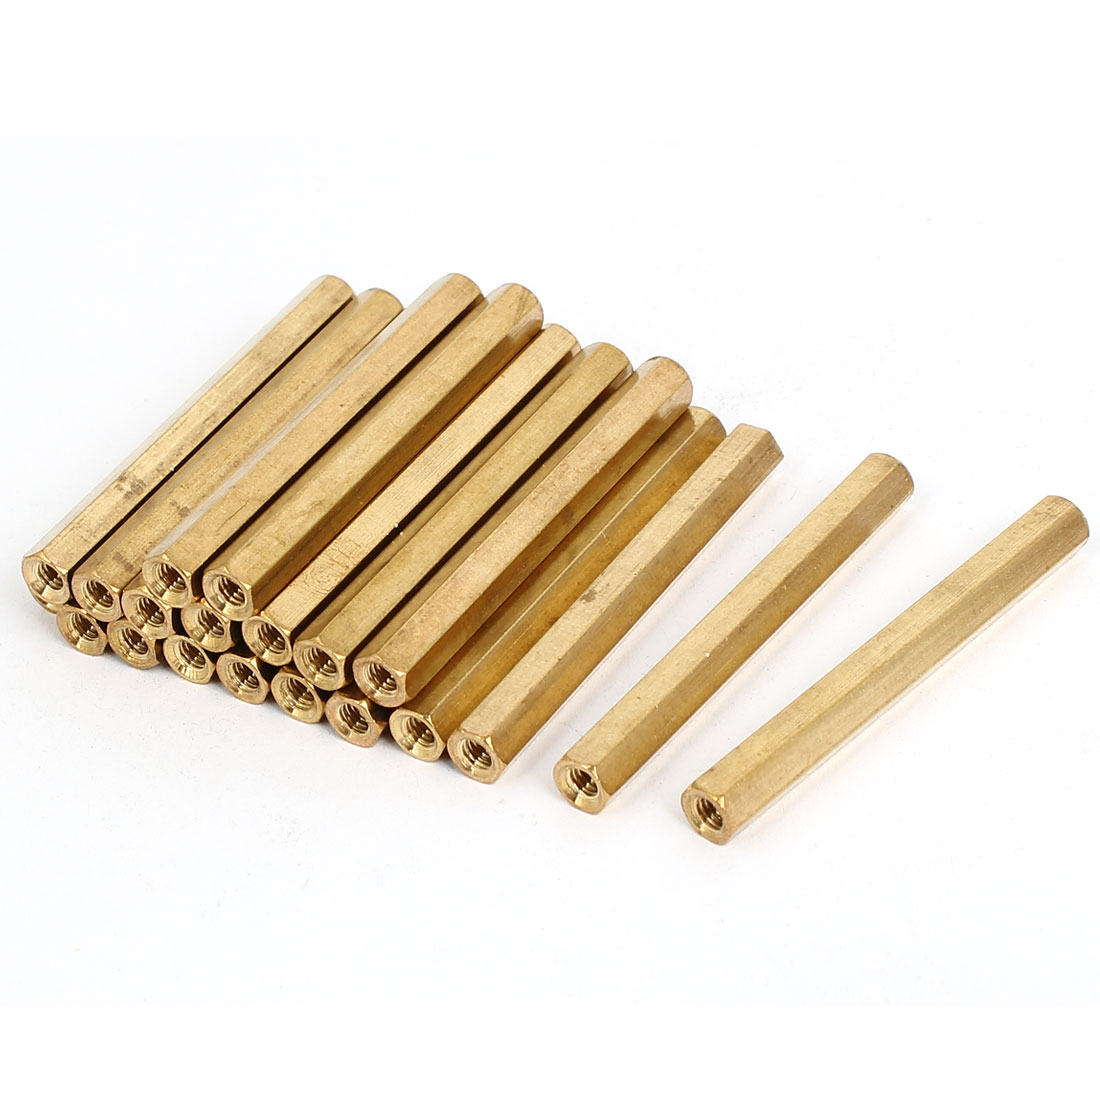 20pcs M4 Female Thread Insulated Brass Standoff Hexagonal Spacer 55mm Long